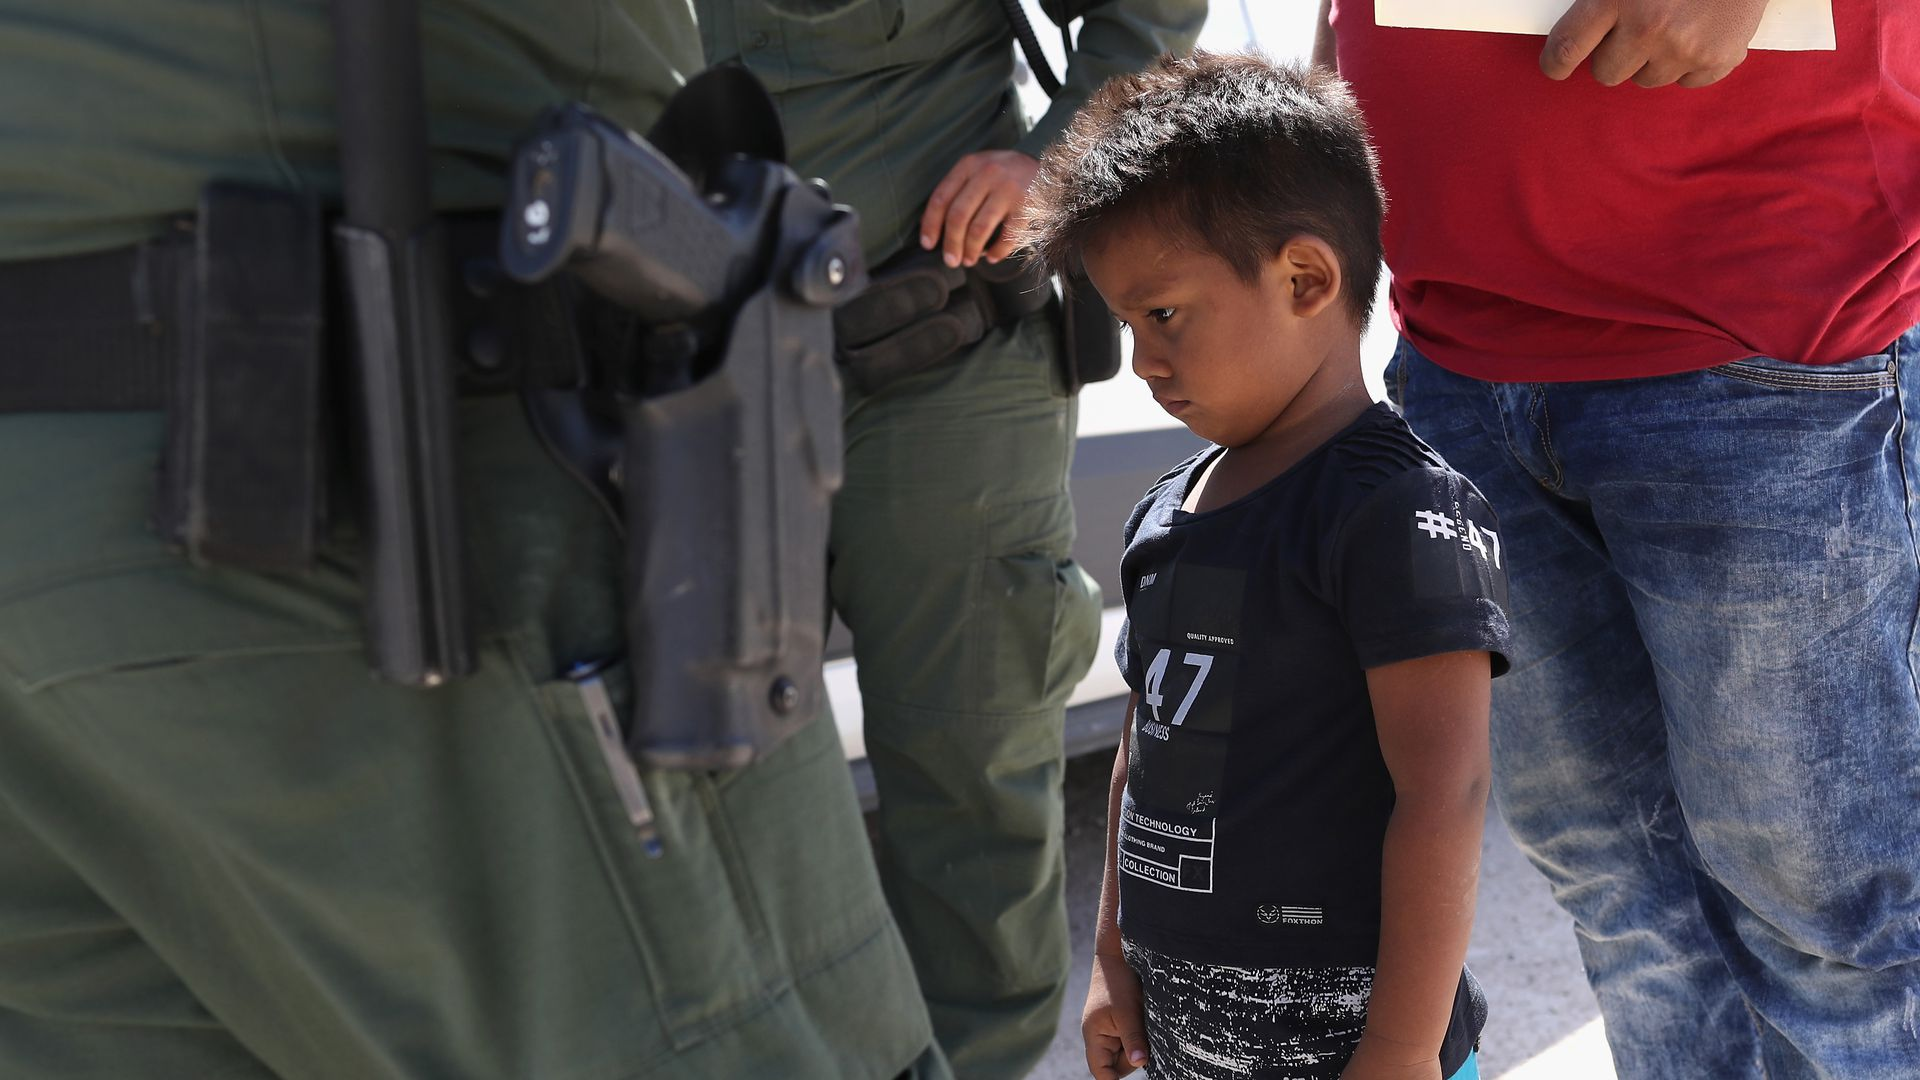 A migrant child is surrounded by border patrol officers